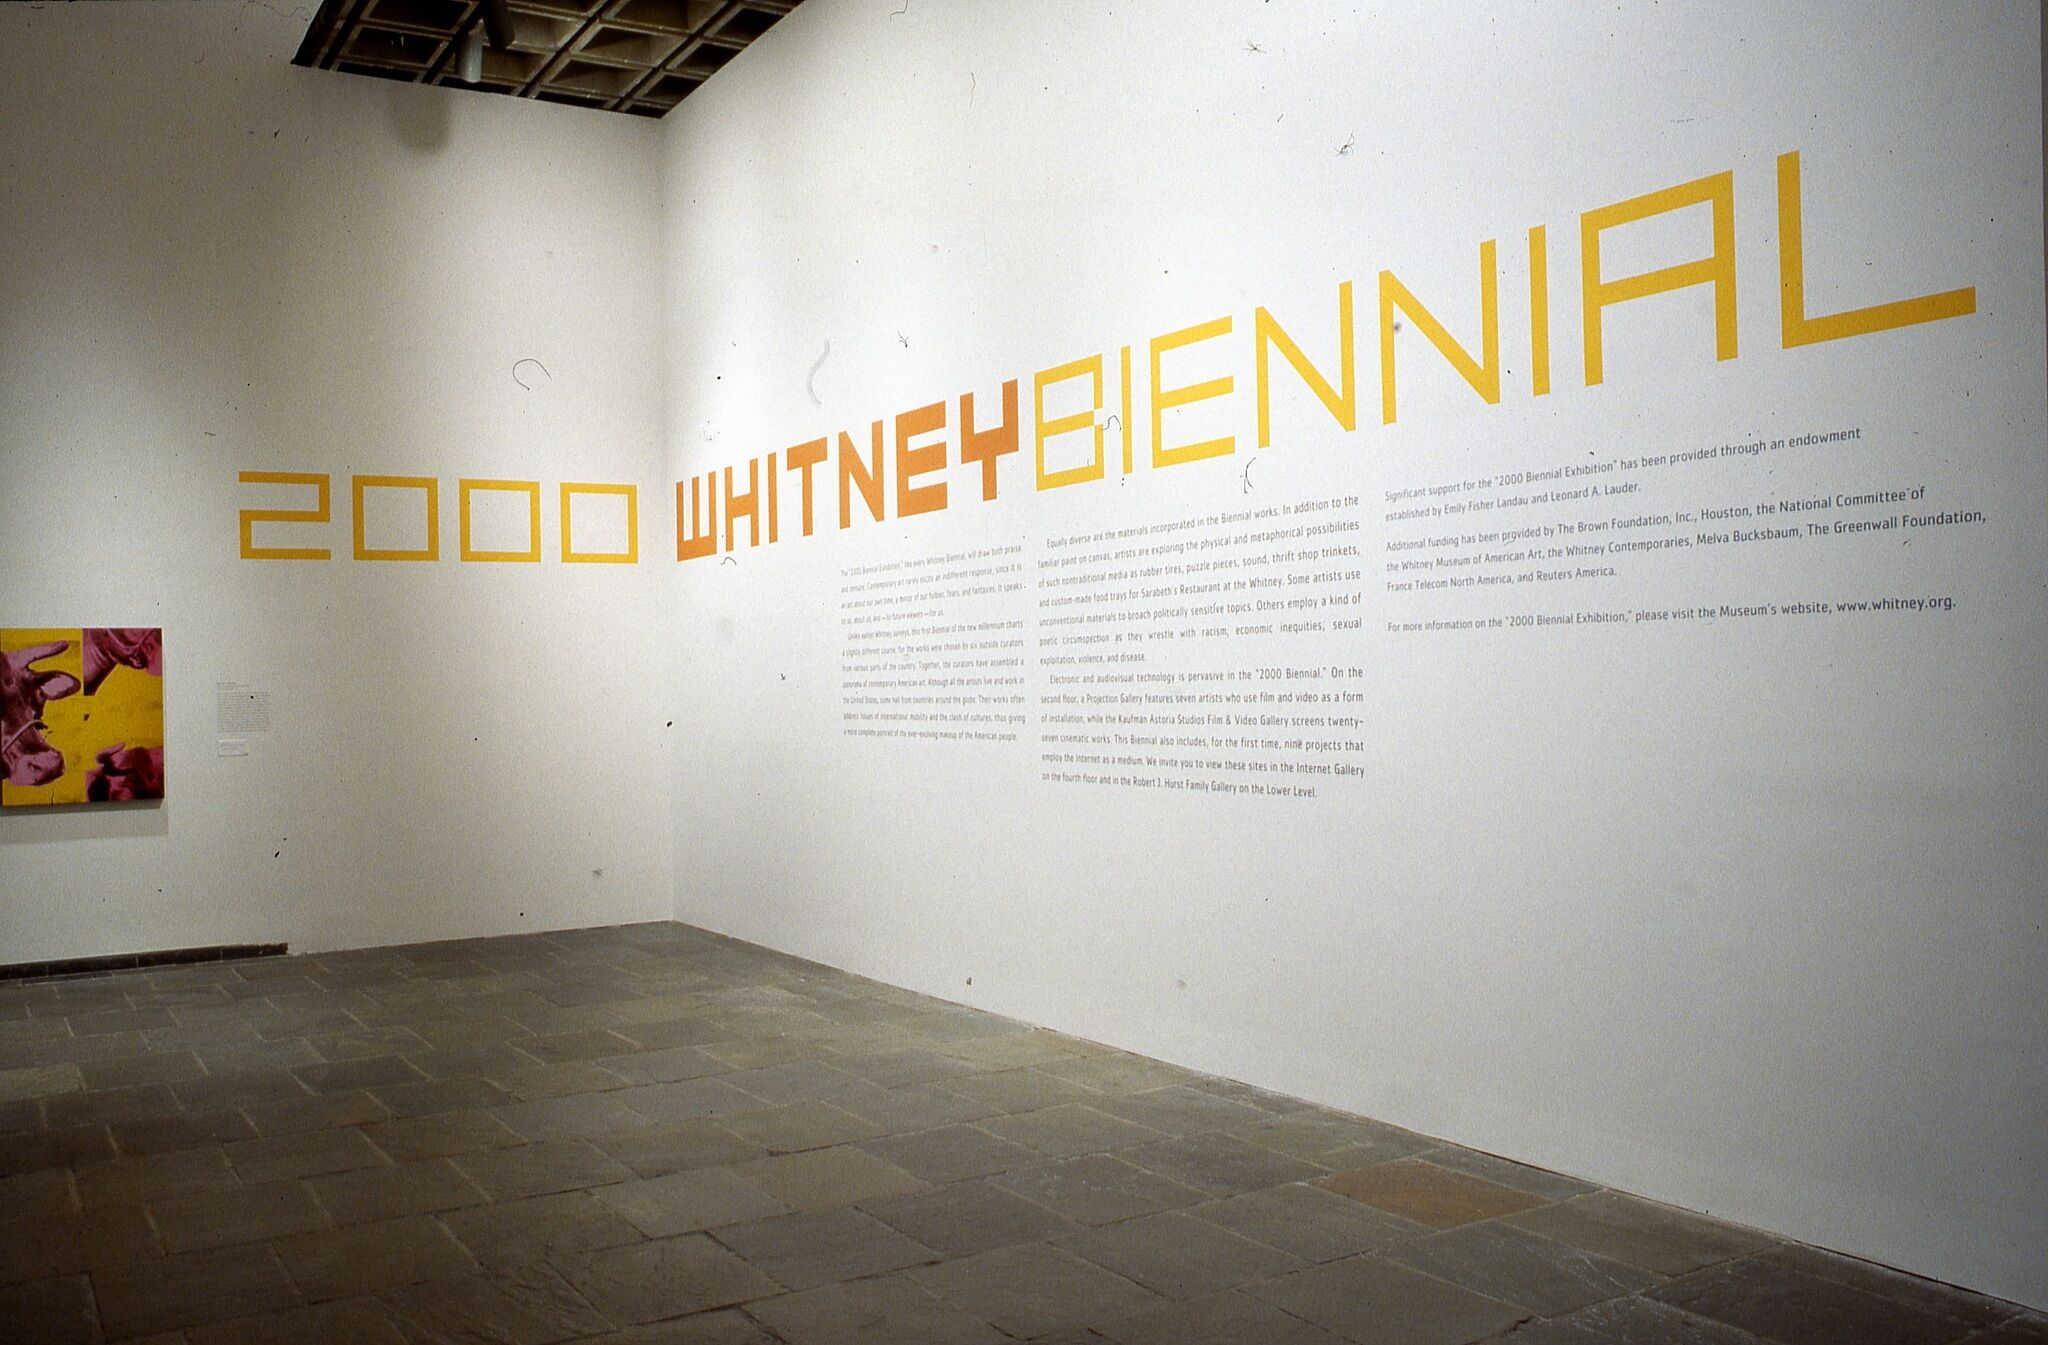 Wall text for the 2000 Whitney Biennial exhibition.